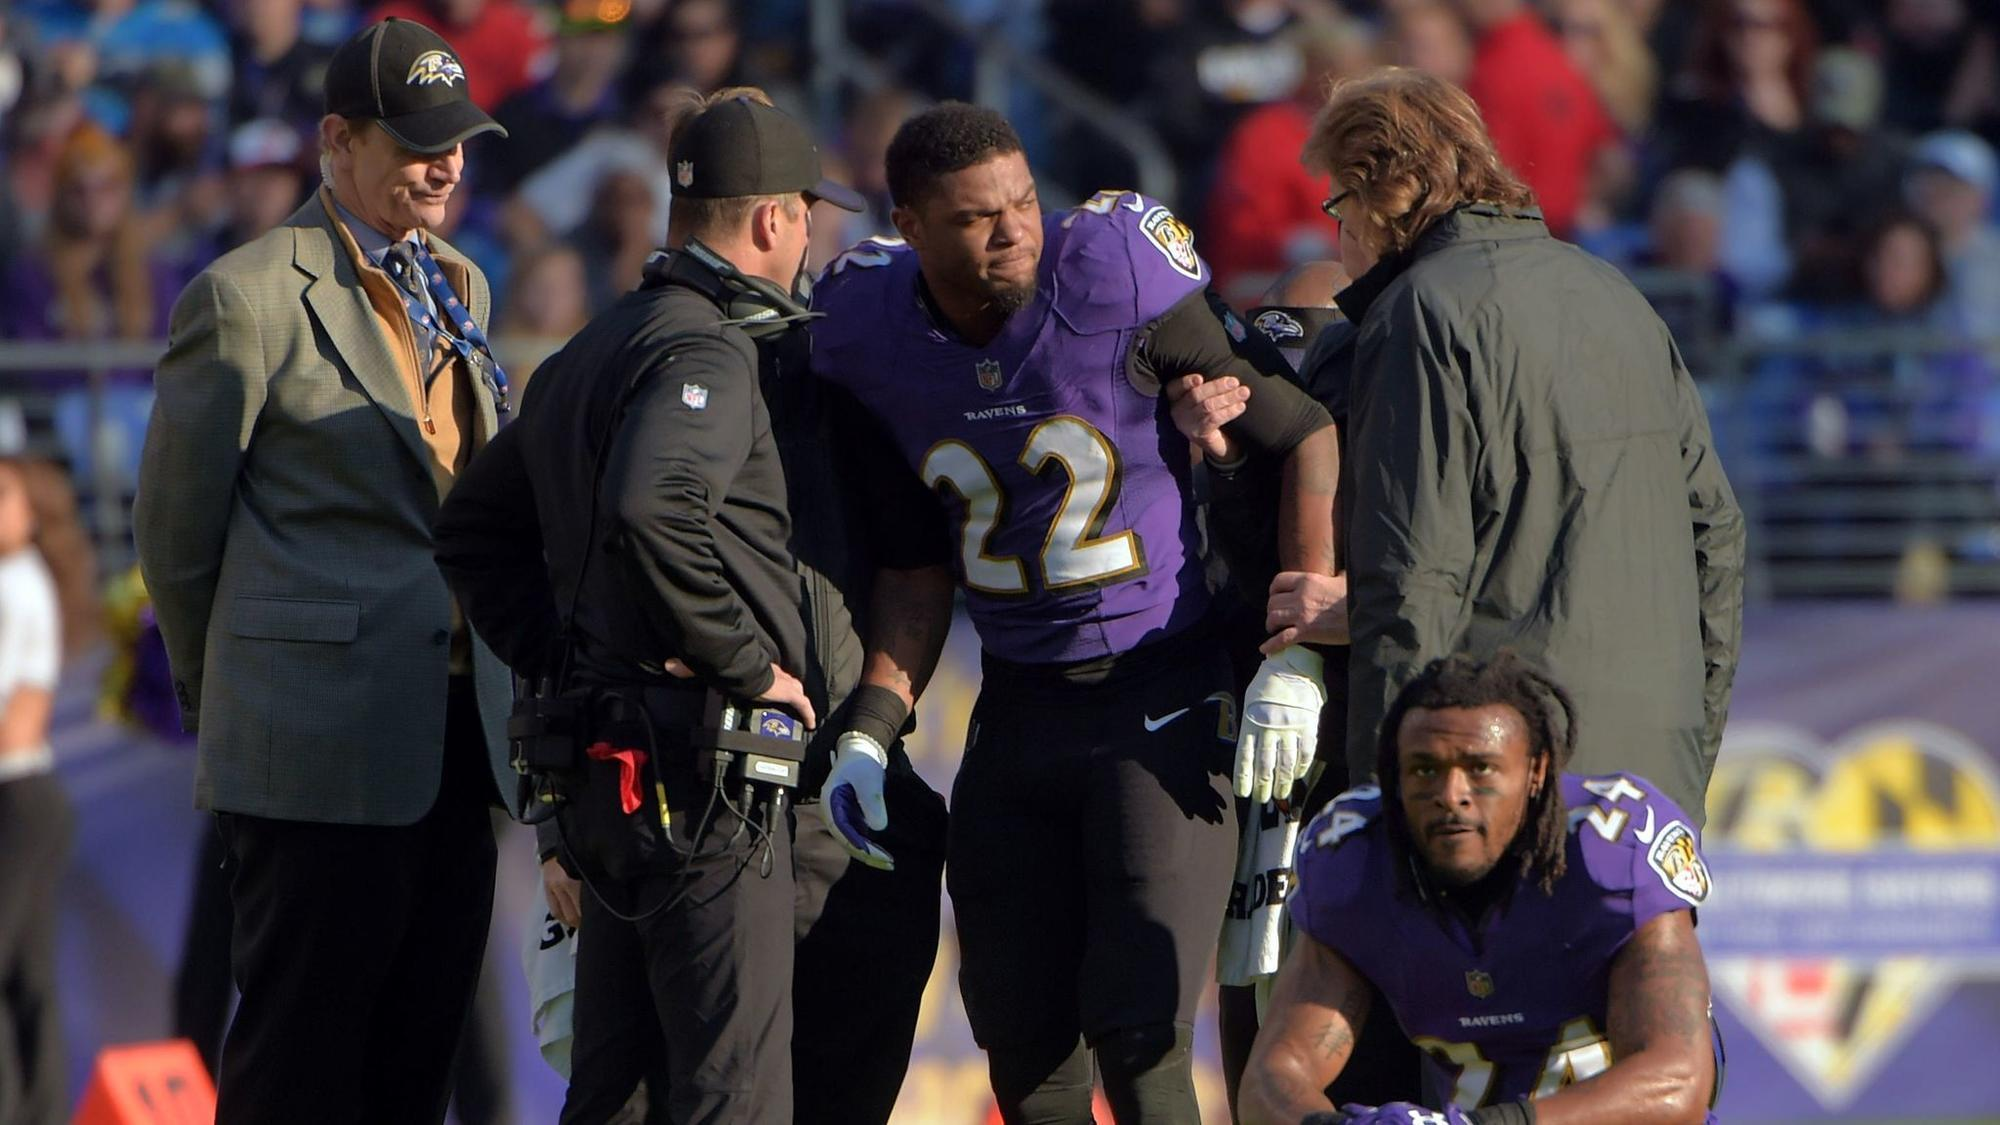 Ravens CB Jimmy Smith facing four-game suspension for violating PED policy, can serve it while injured